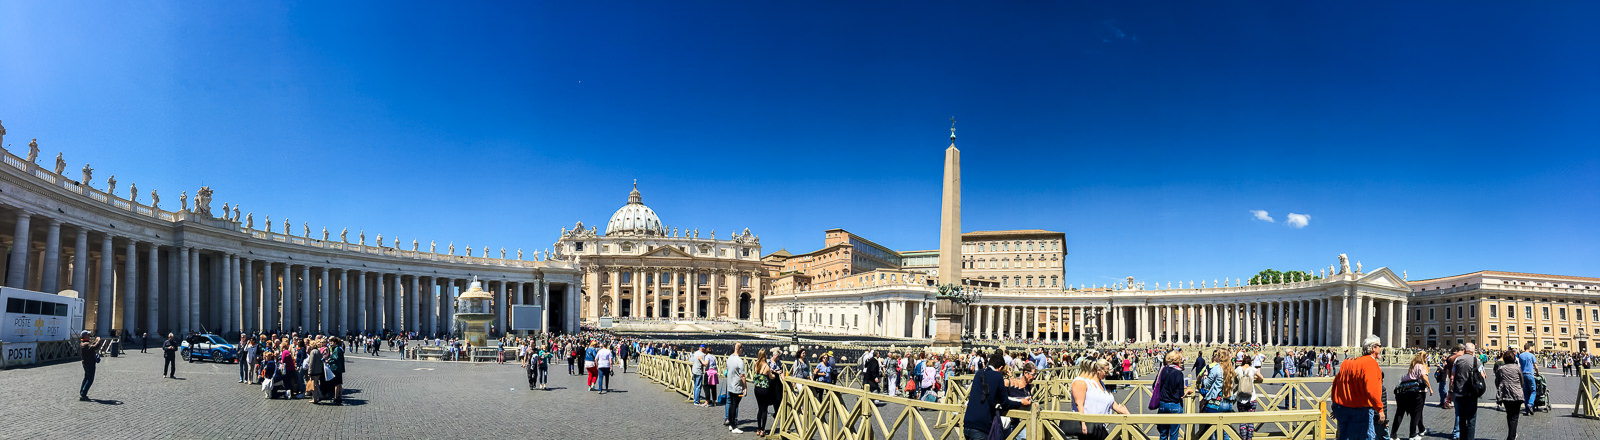 Outside the Vatican